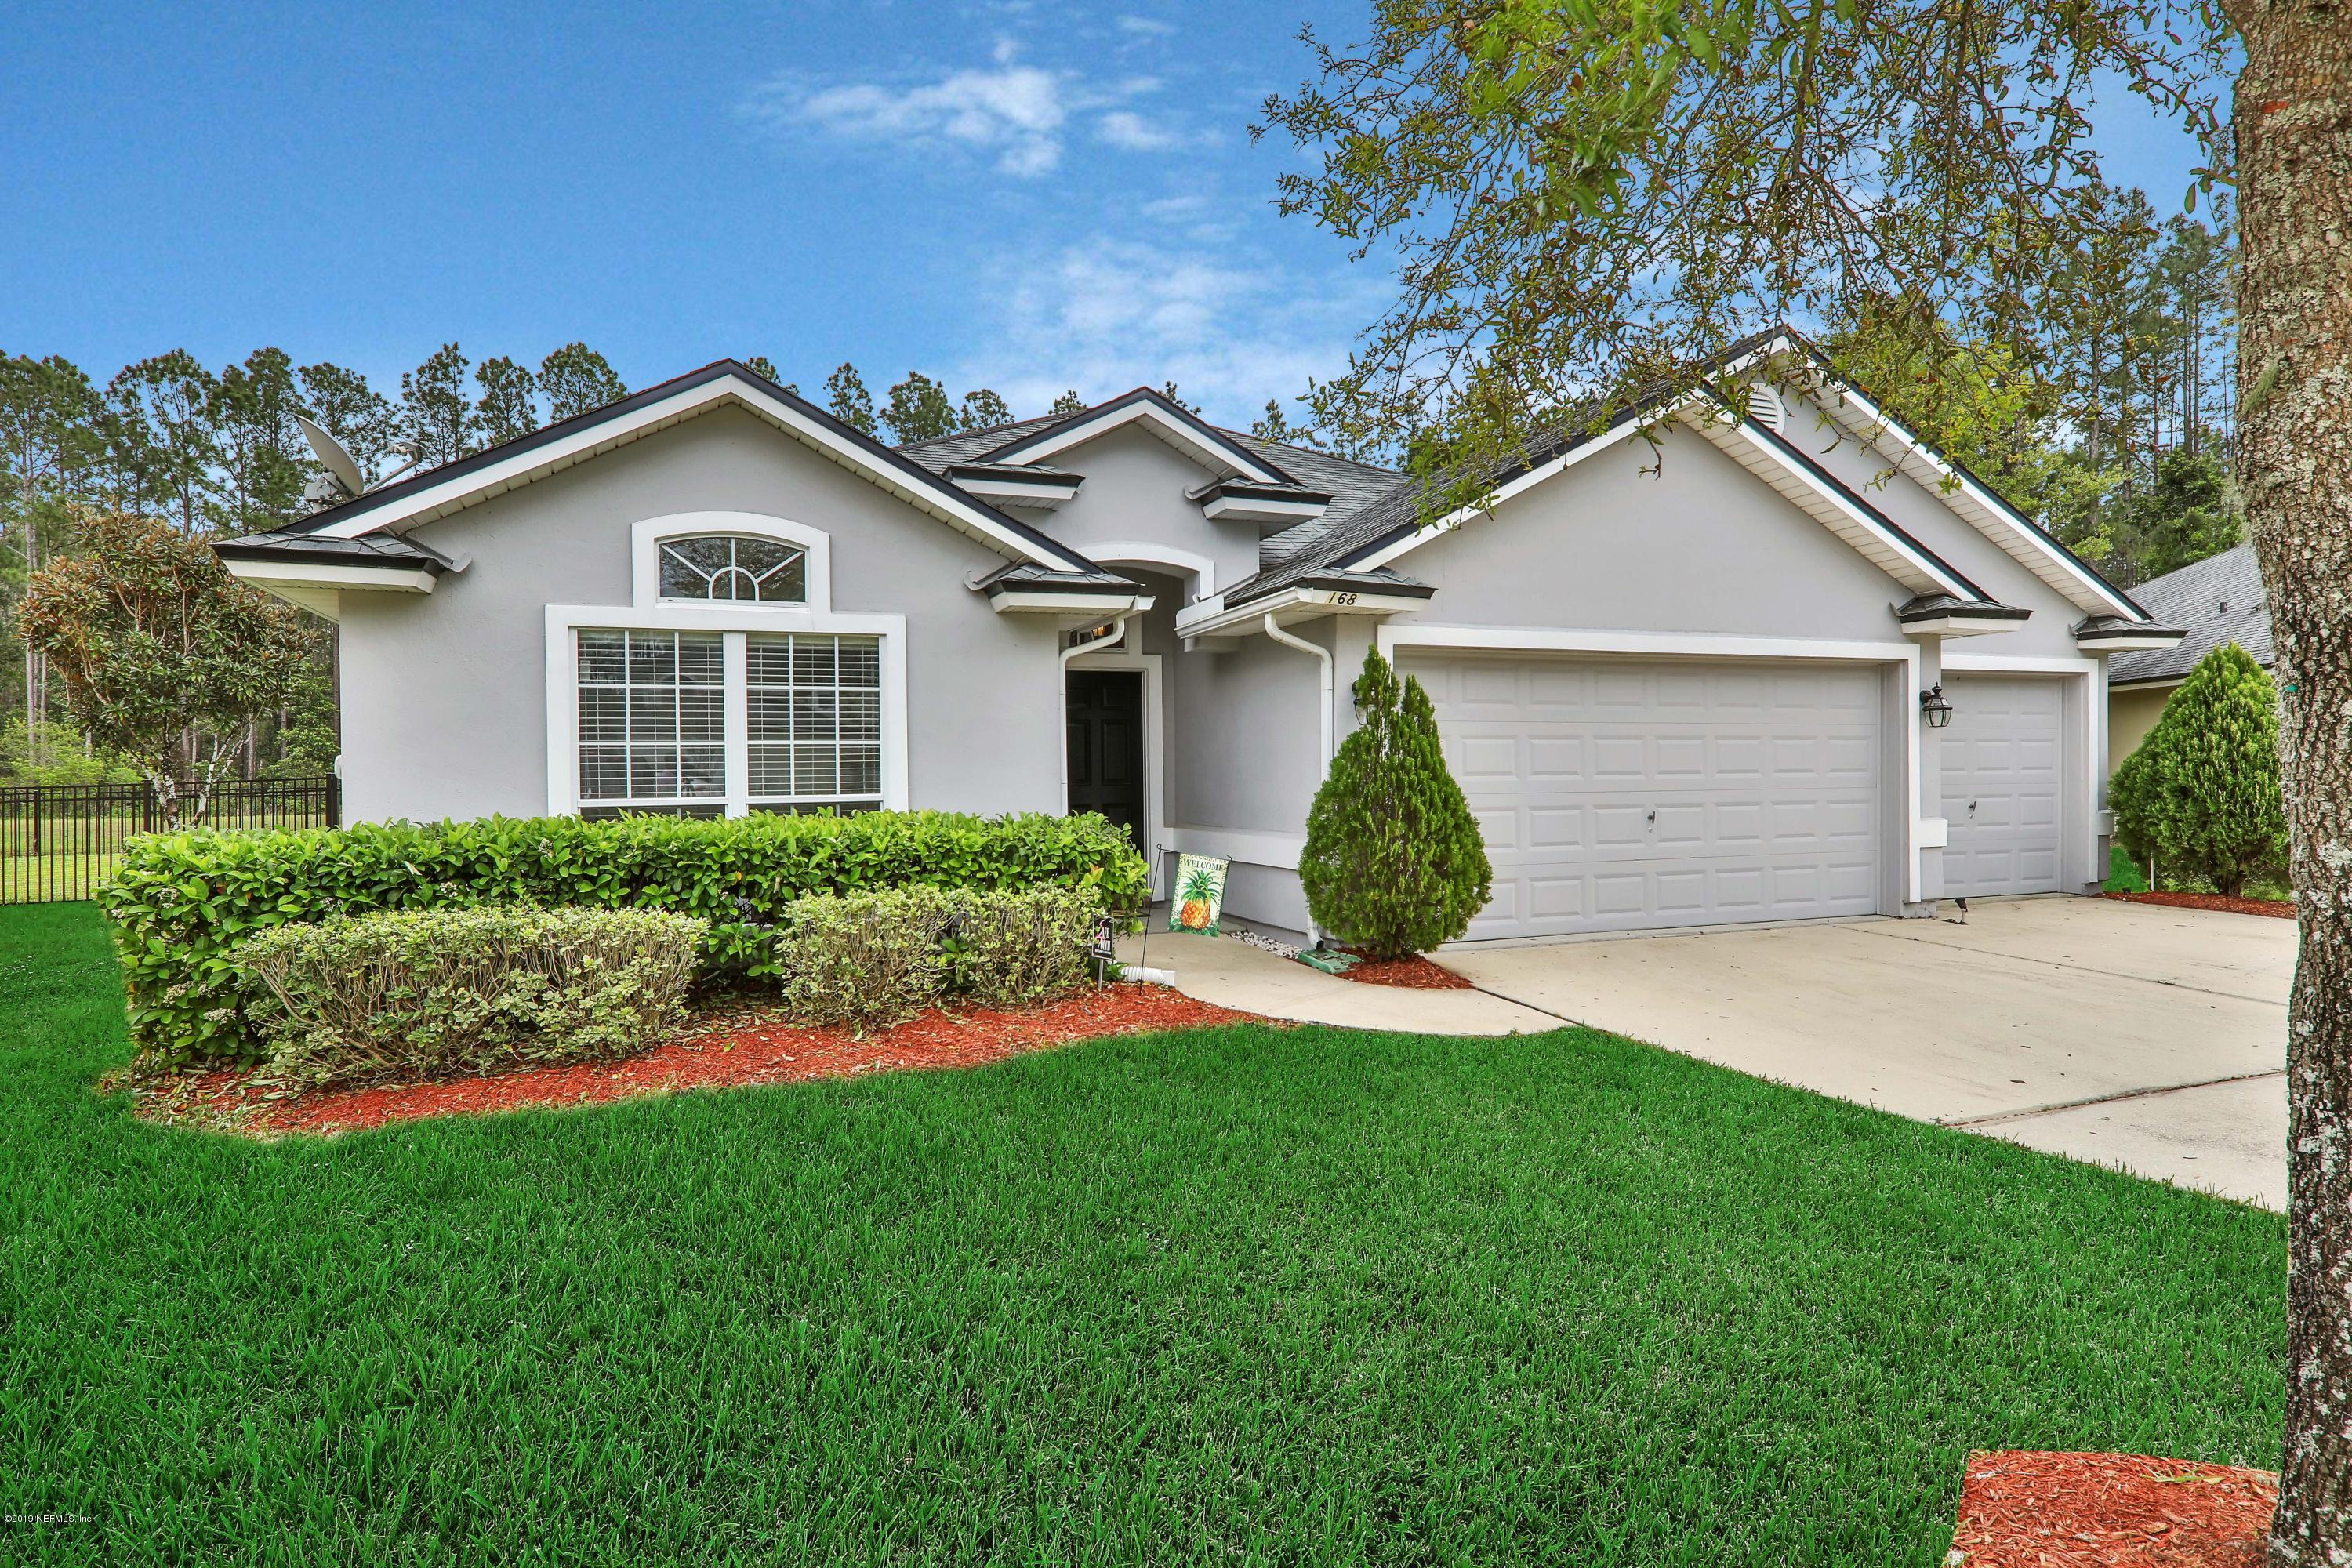 168 FLOWER OF SCOTLAND, ST JOHNS, FLORIDA 32259, 3 Bedrooms Bedrooms, ,3 BathroomsBathrooms,Residential - single family,For sale,FLOWER OF SCOTLAND,985461